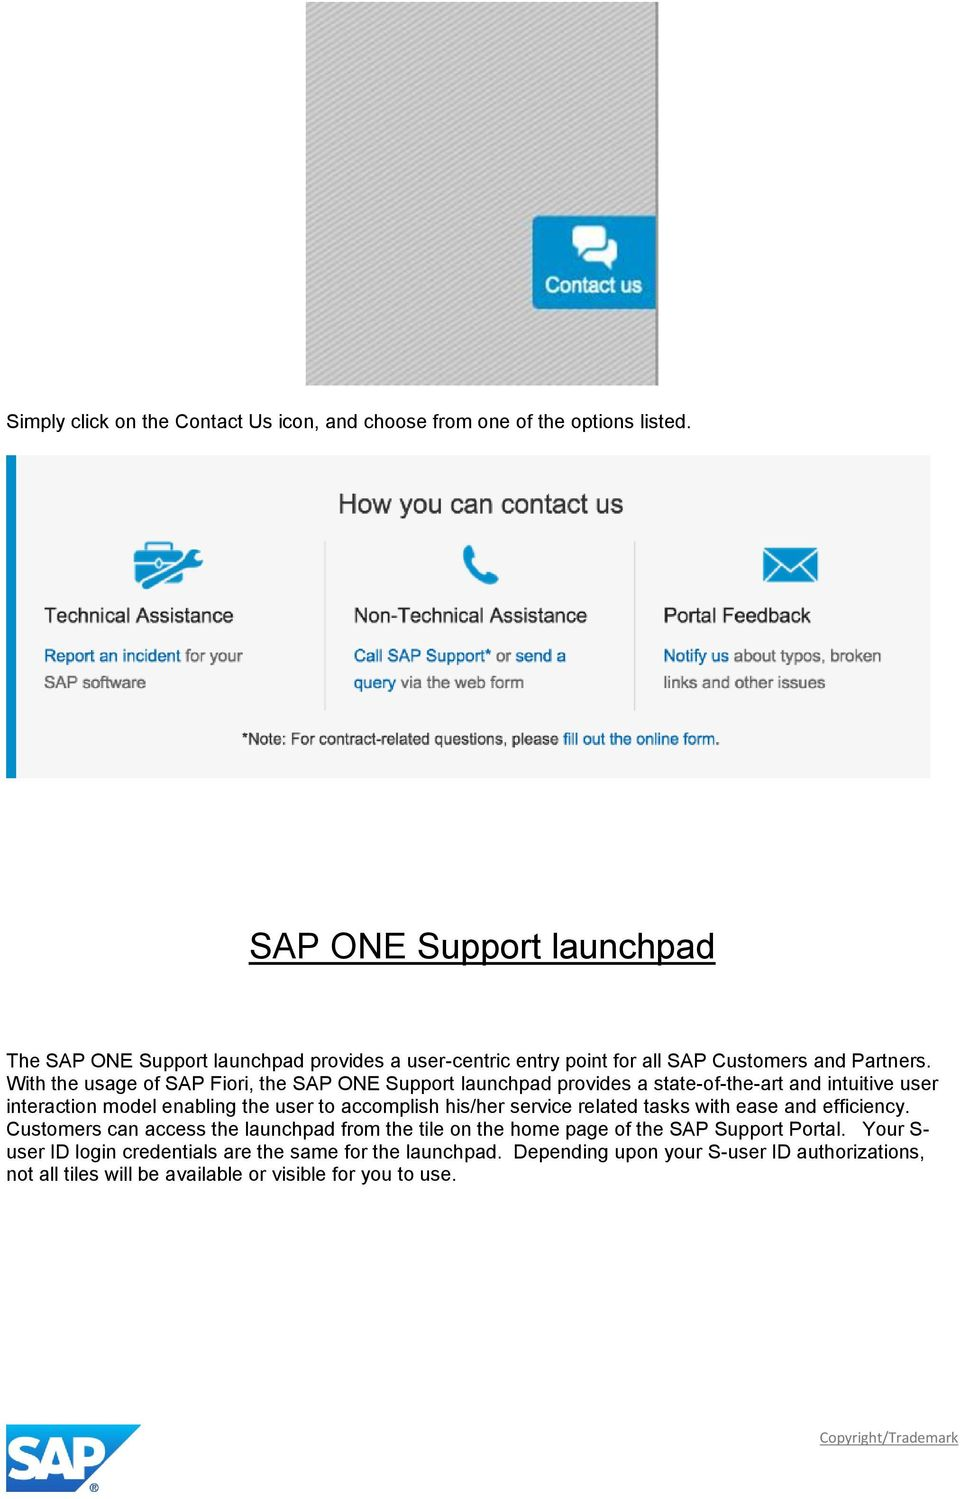 With the usage of SAP Fiori, the SAP ONE Support launchpad provides a state-of-the-art and intuitive user interaction model enabling the user to accomplish his/her